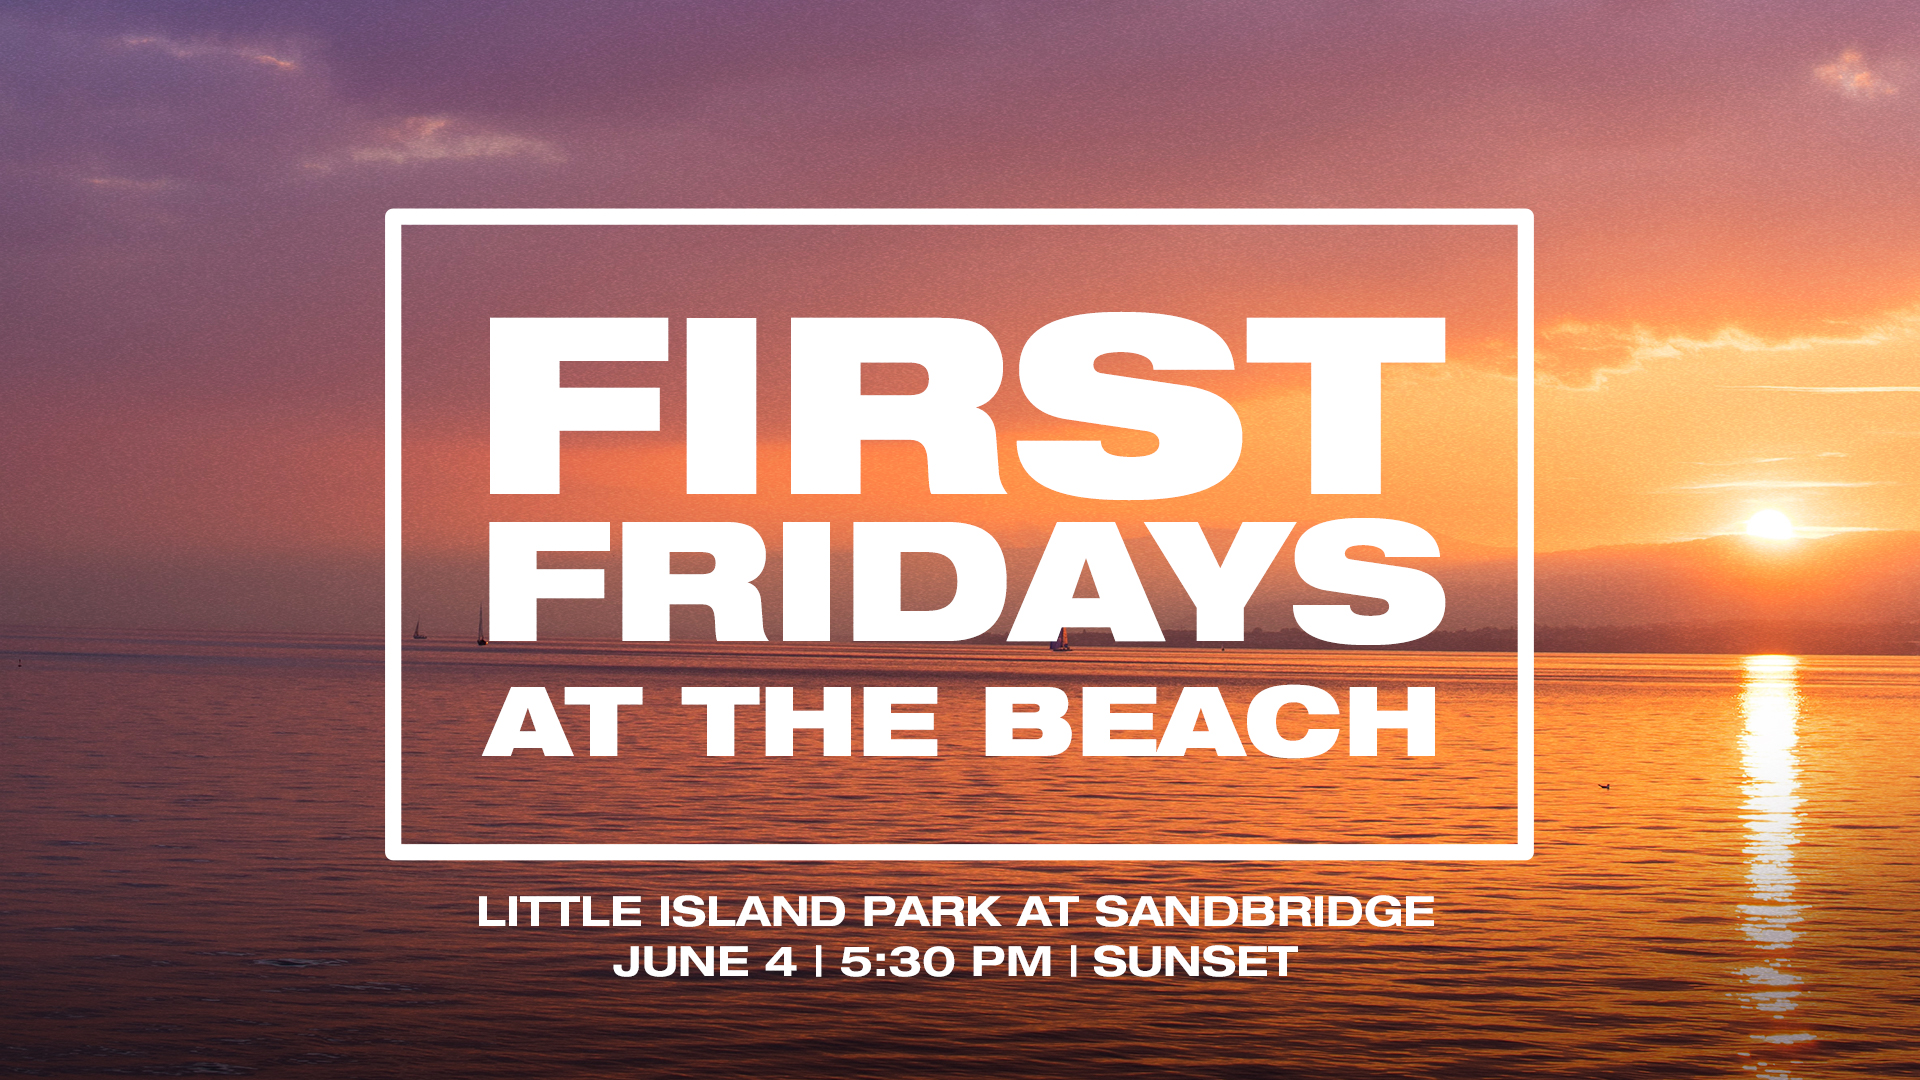 First Fridays at the Beach